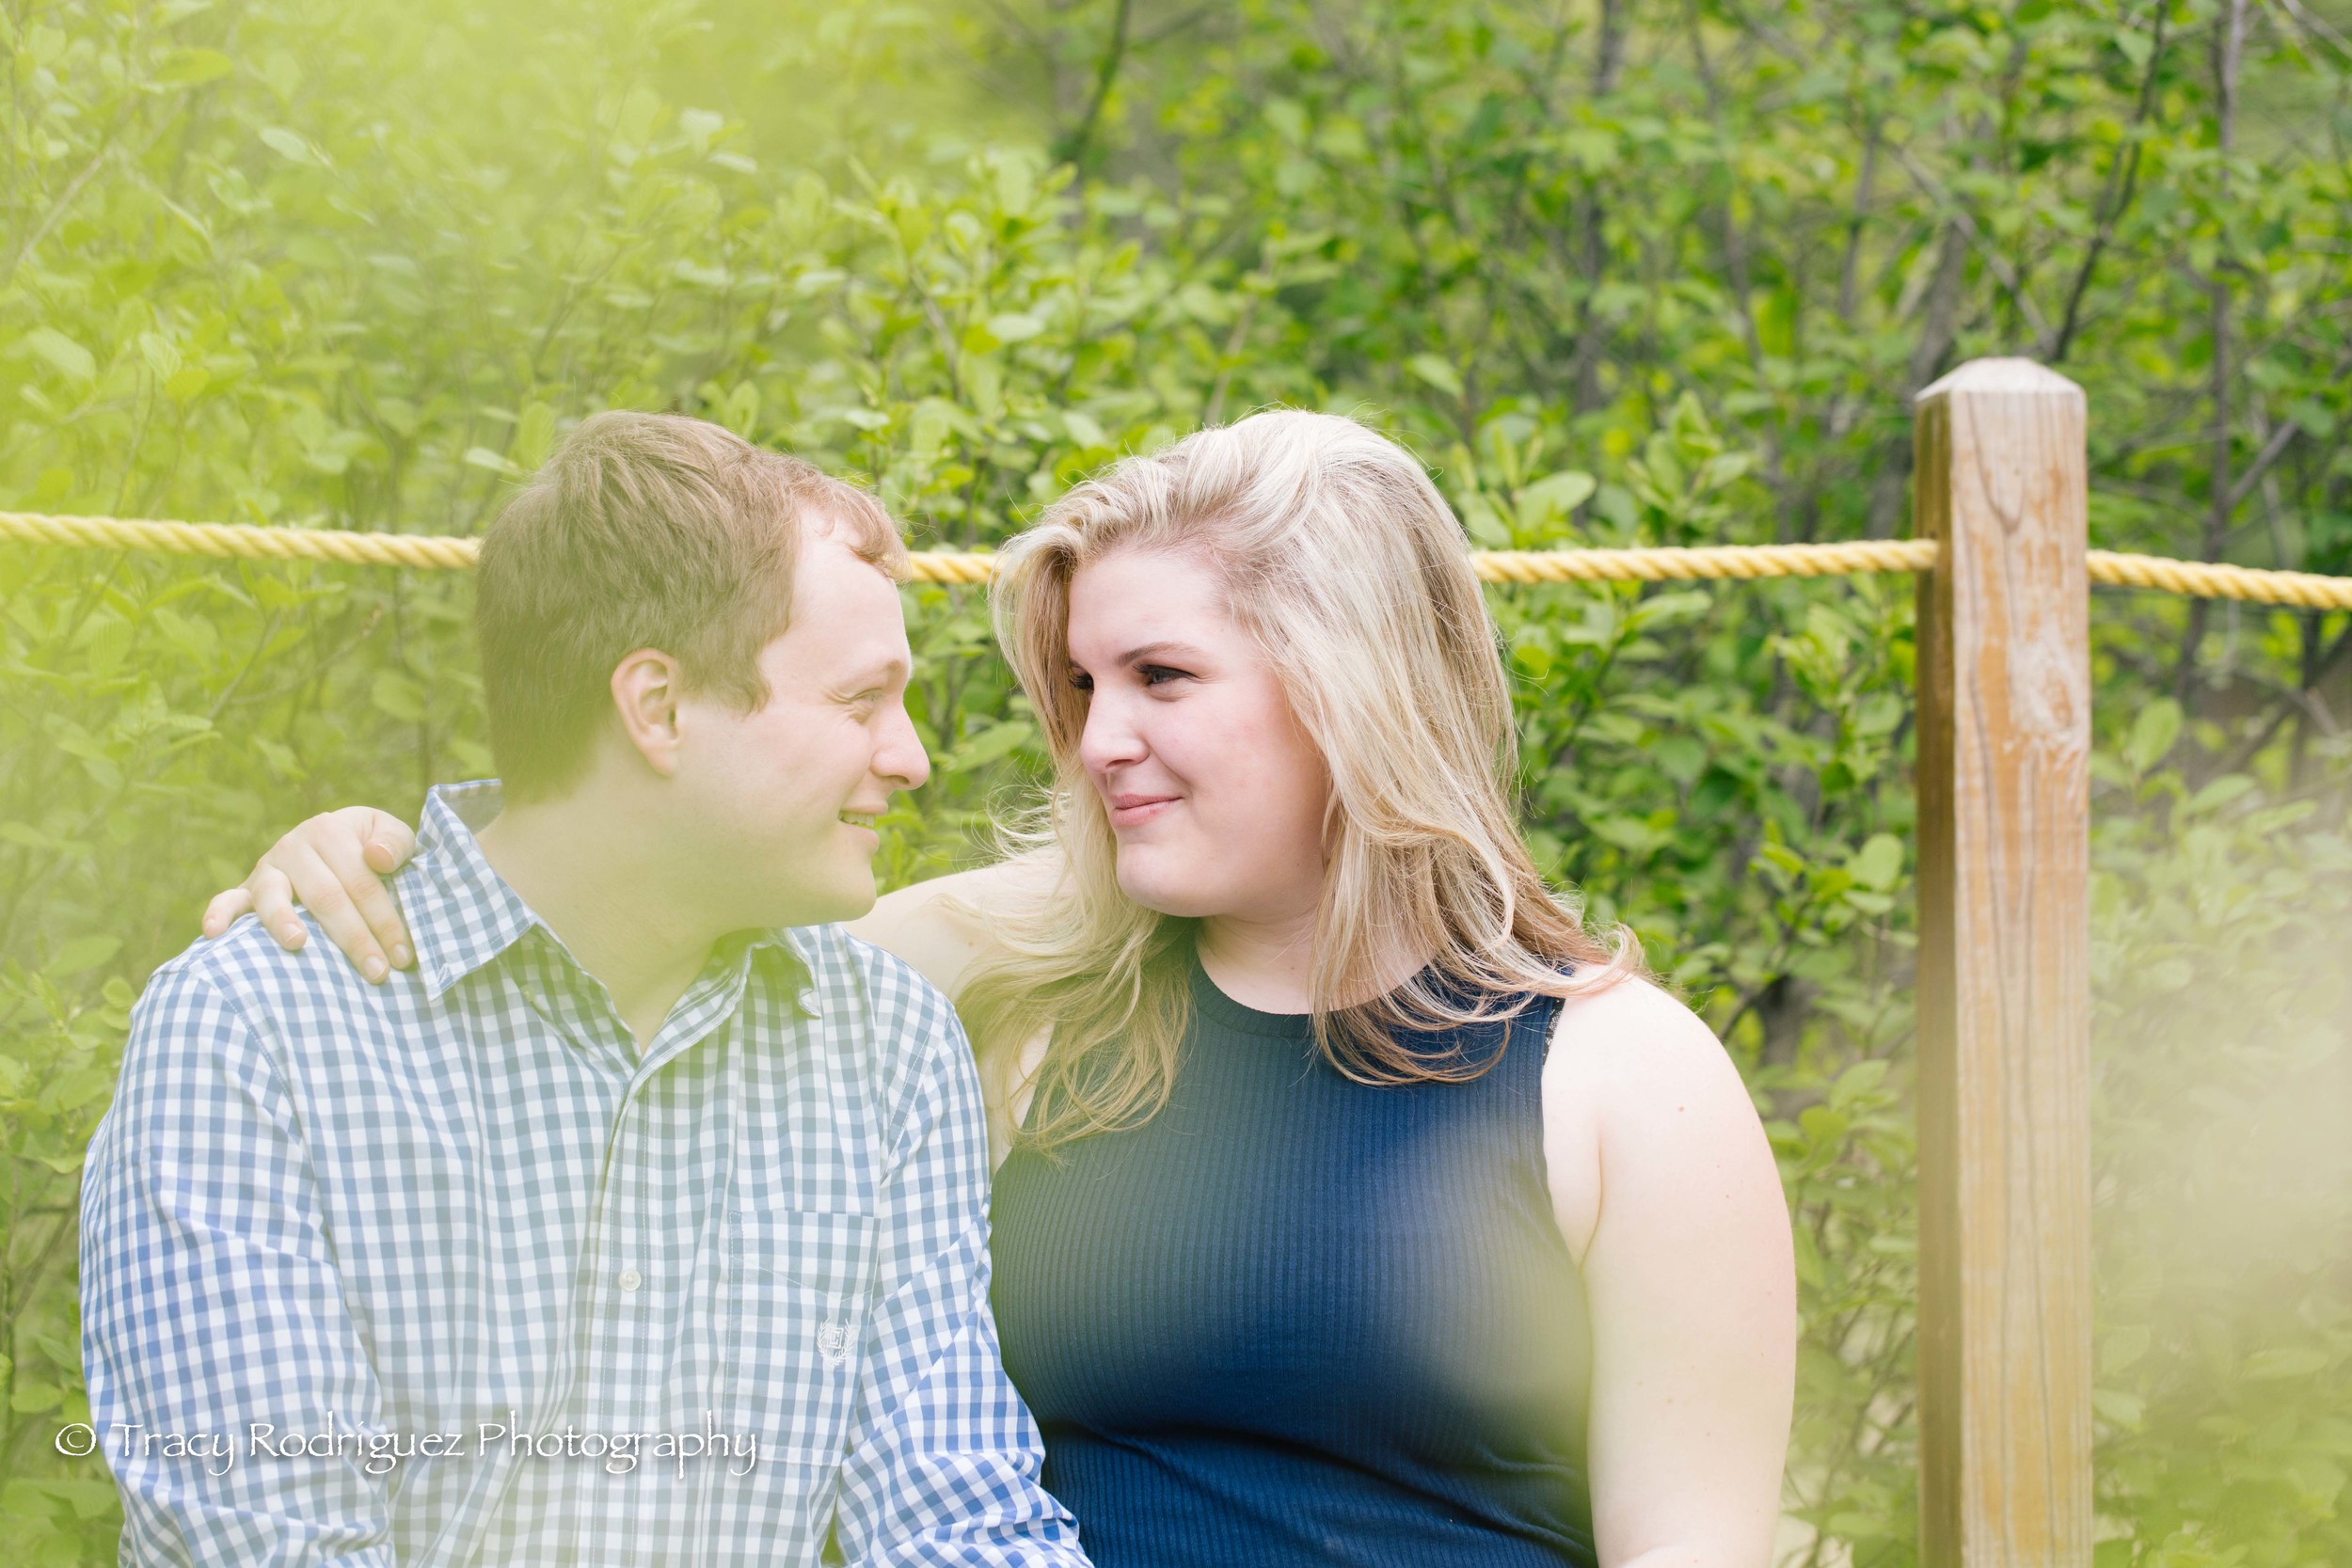 TracyRodriguezPhotography-Engagement-LowRes-61.jpg